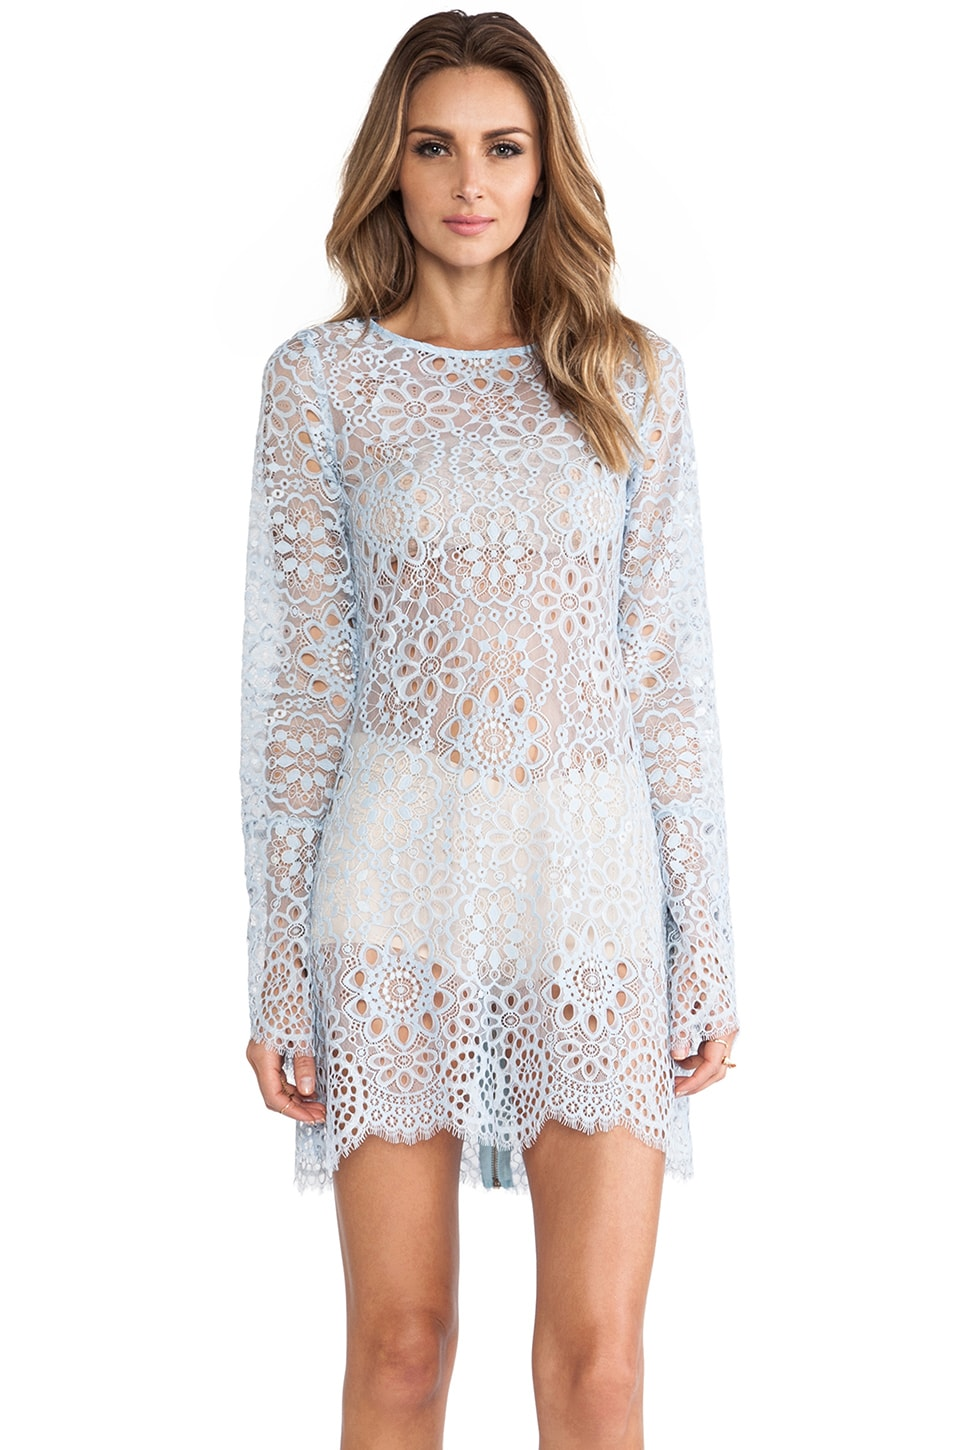 For Love & Lemons Love Birds Dress in Periwinkle